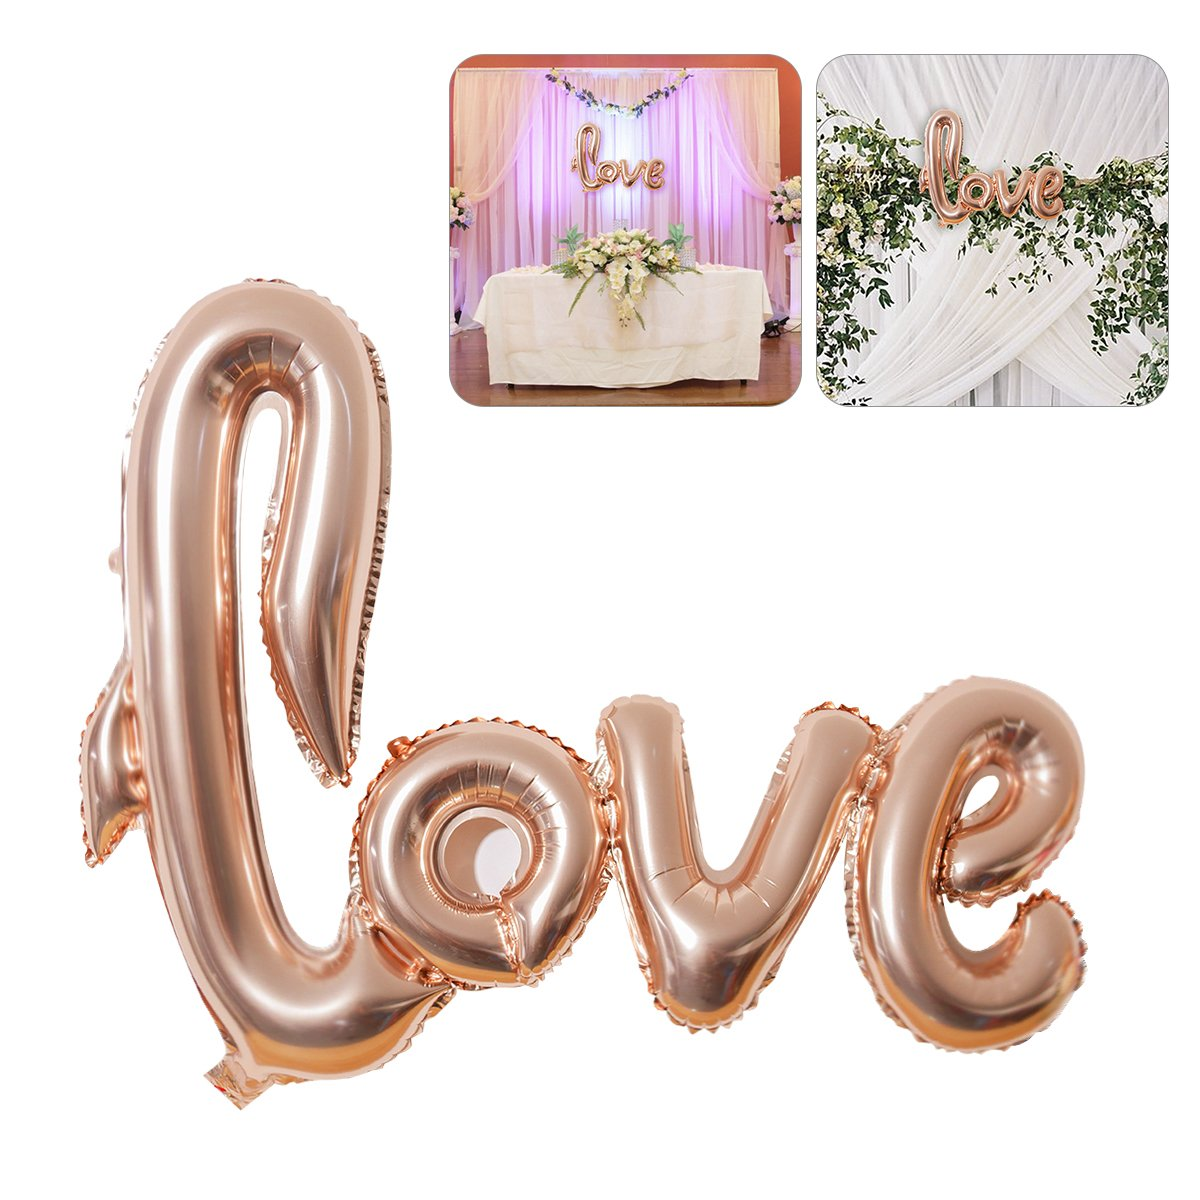 NUOLUX Jumbo Foil Love Balloon Romantic Wedding Bridal Shower Anniversary Engagement Party Decoration (Pink)